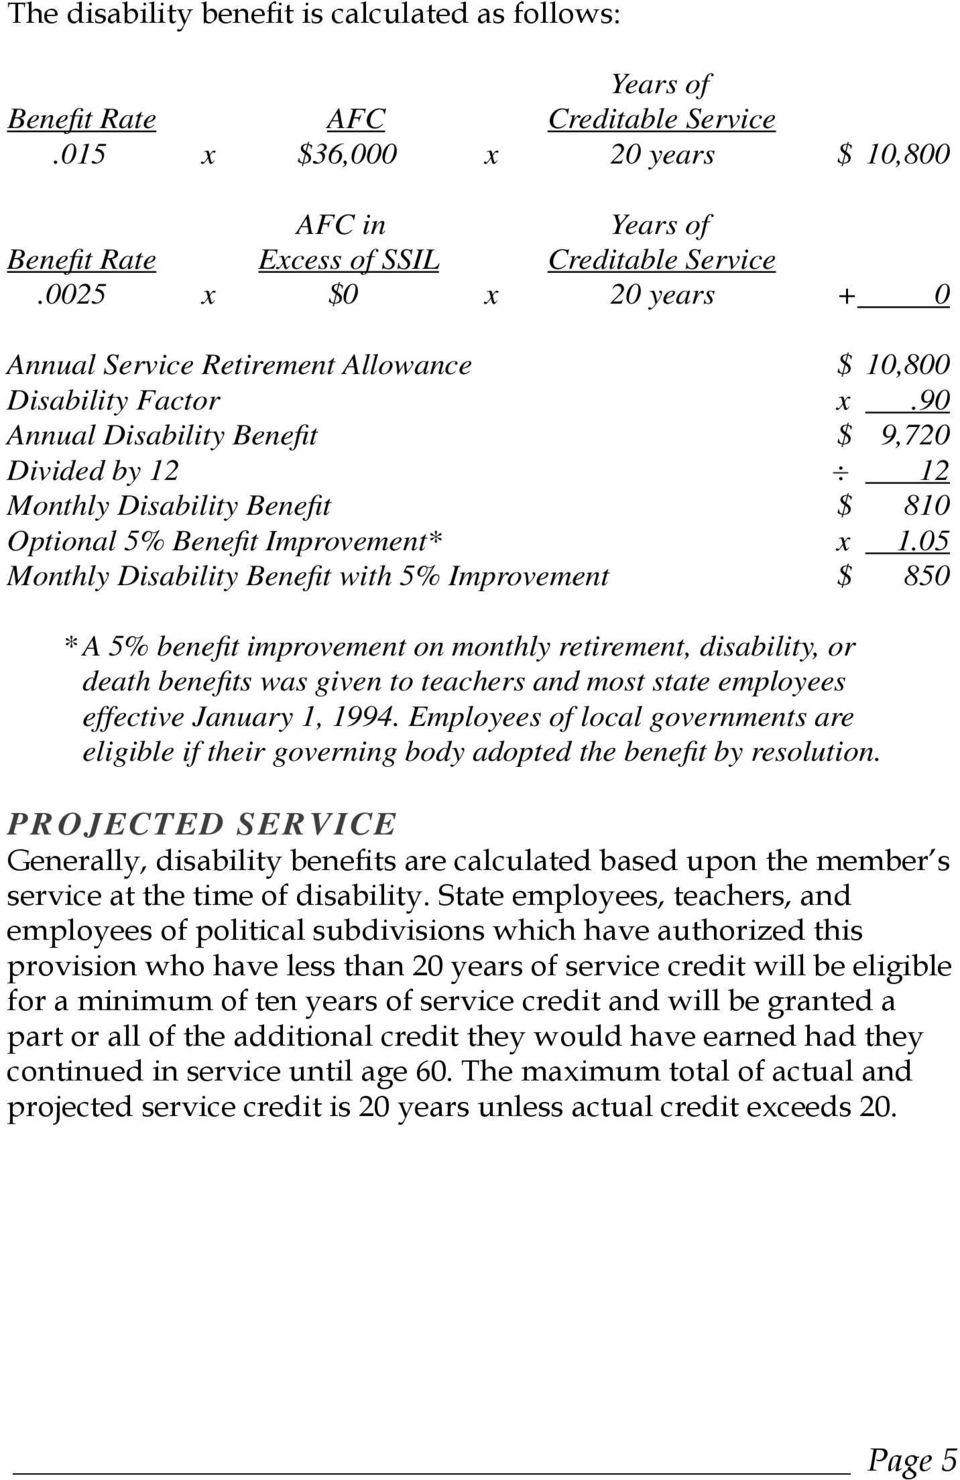 90 Annual Disability Benefi t $ 9,720 Divided by 12 : 12 Monthly Disability Benefi t $ 810 Optional 5% Benefi t Improvement* x 1.